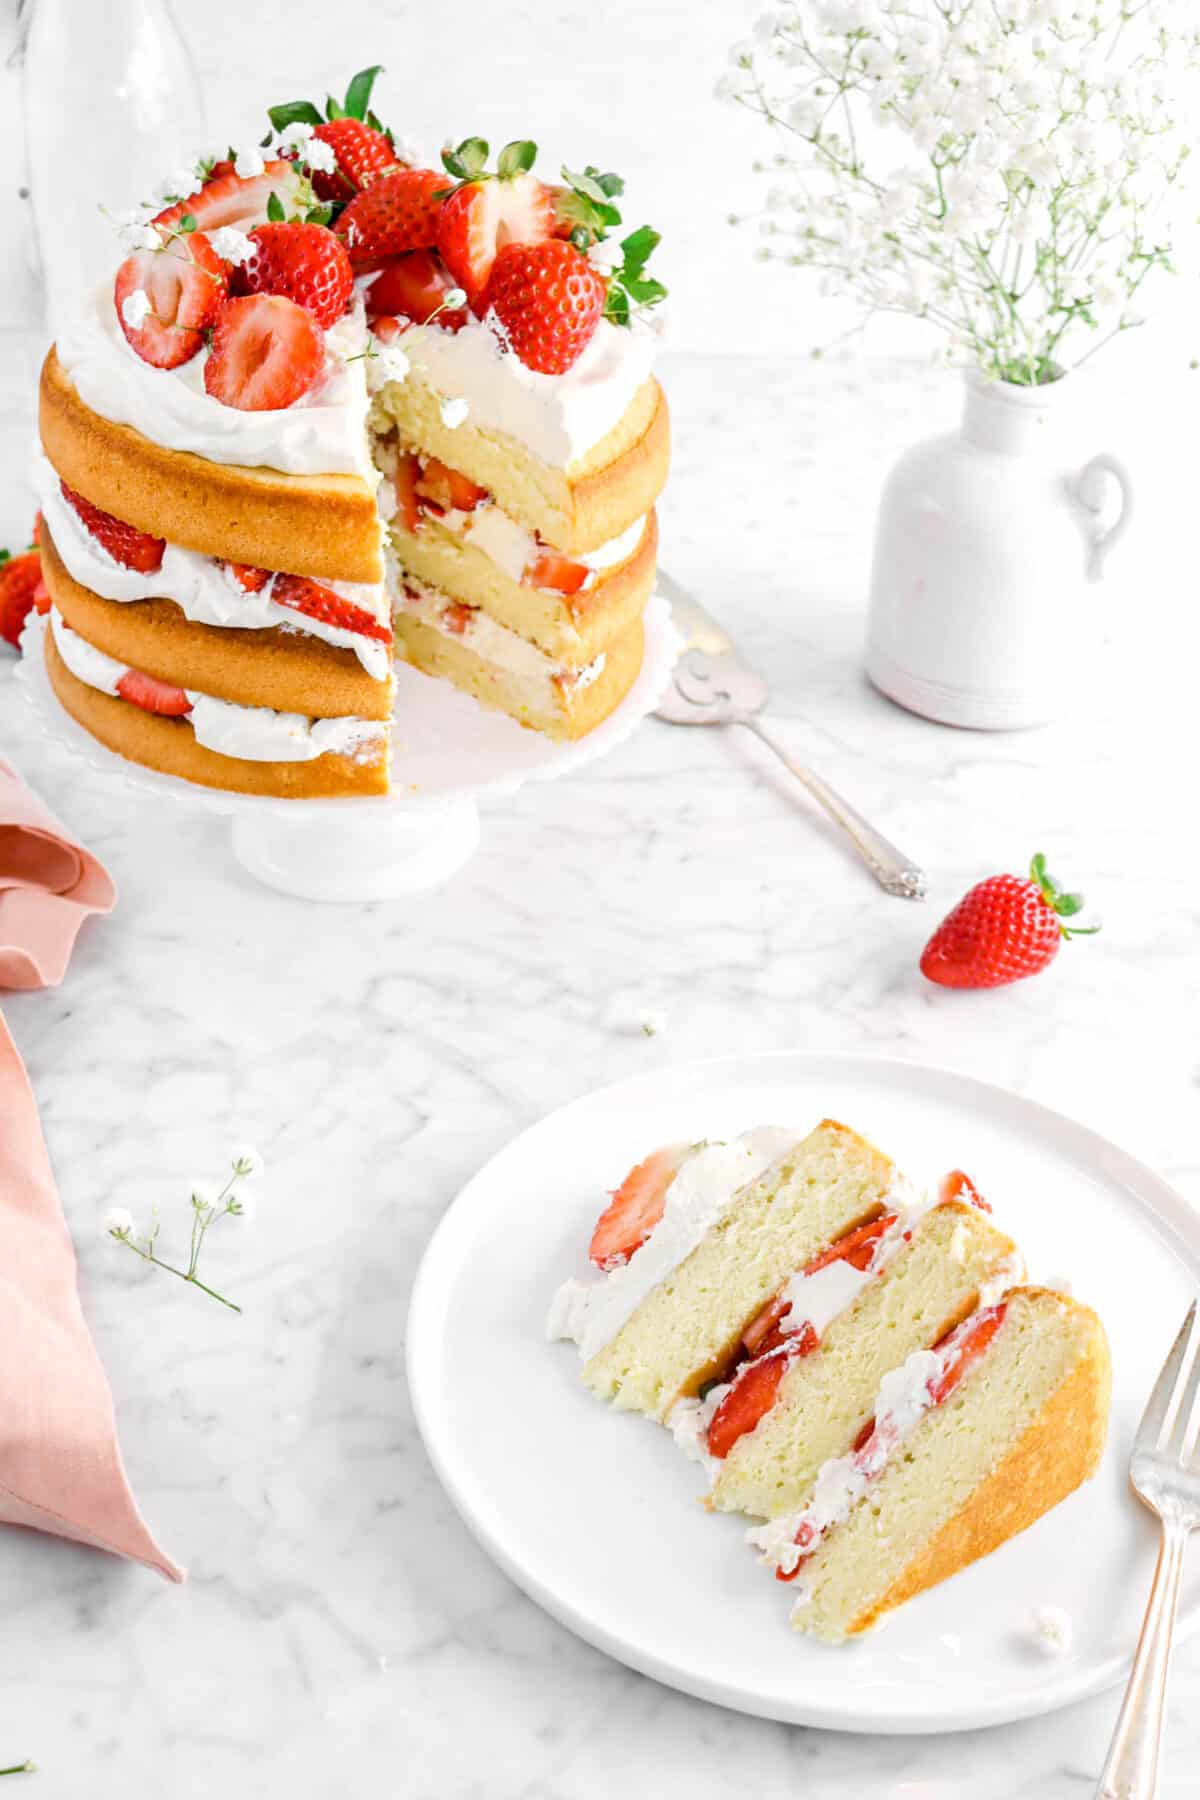 strawberry shortcake cake slice on white plate with a fork, full cake beside, and white flowers